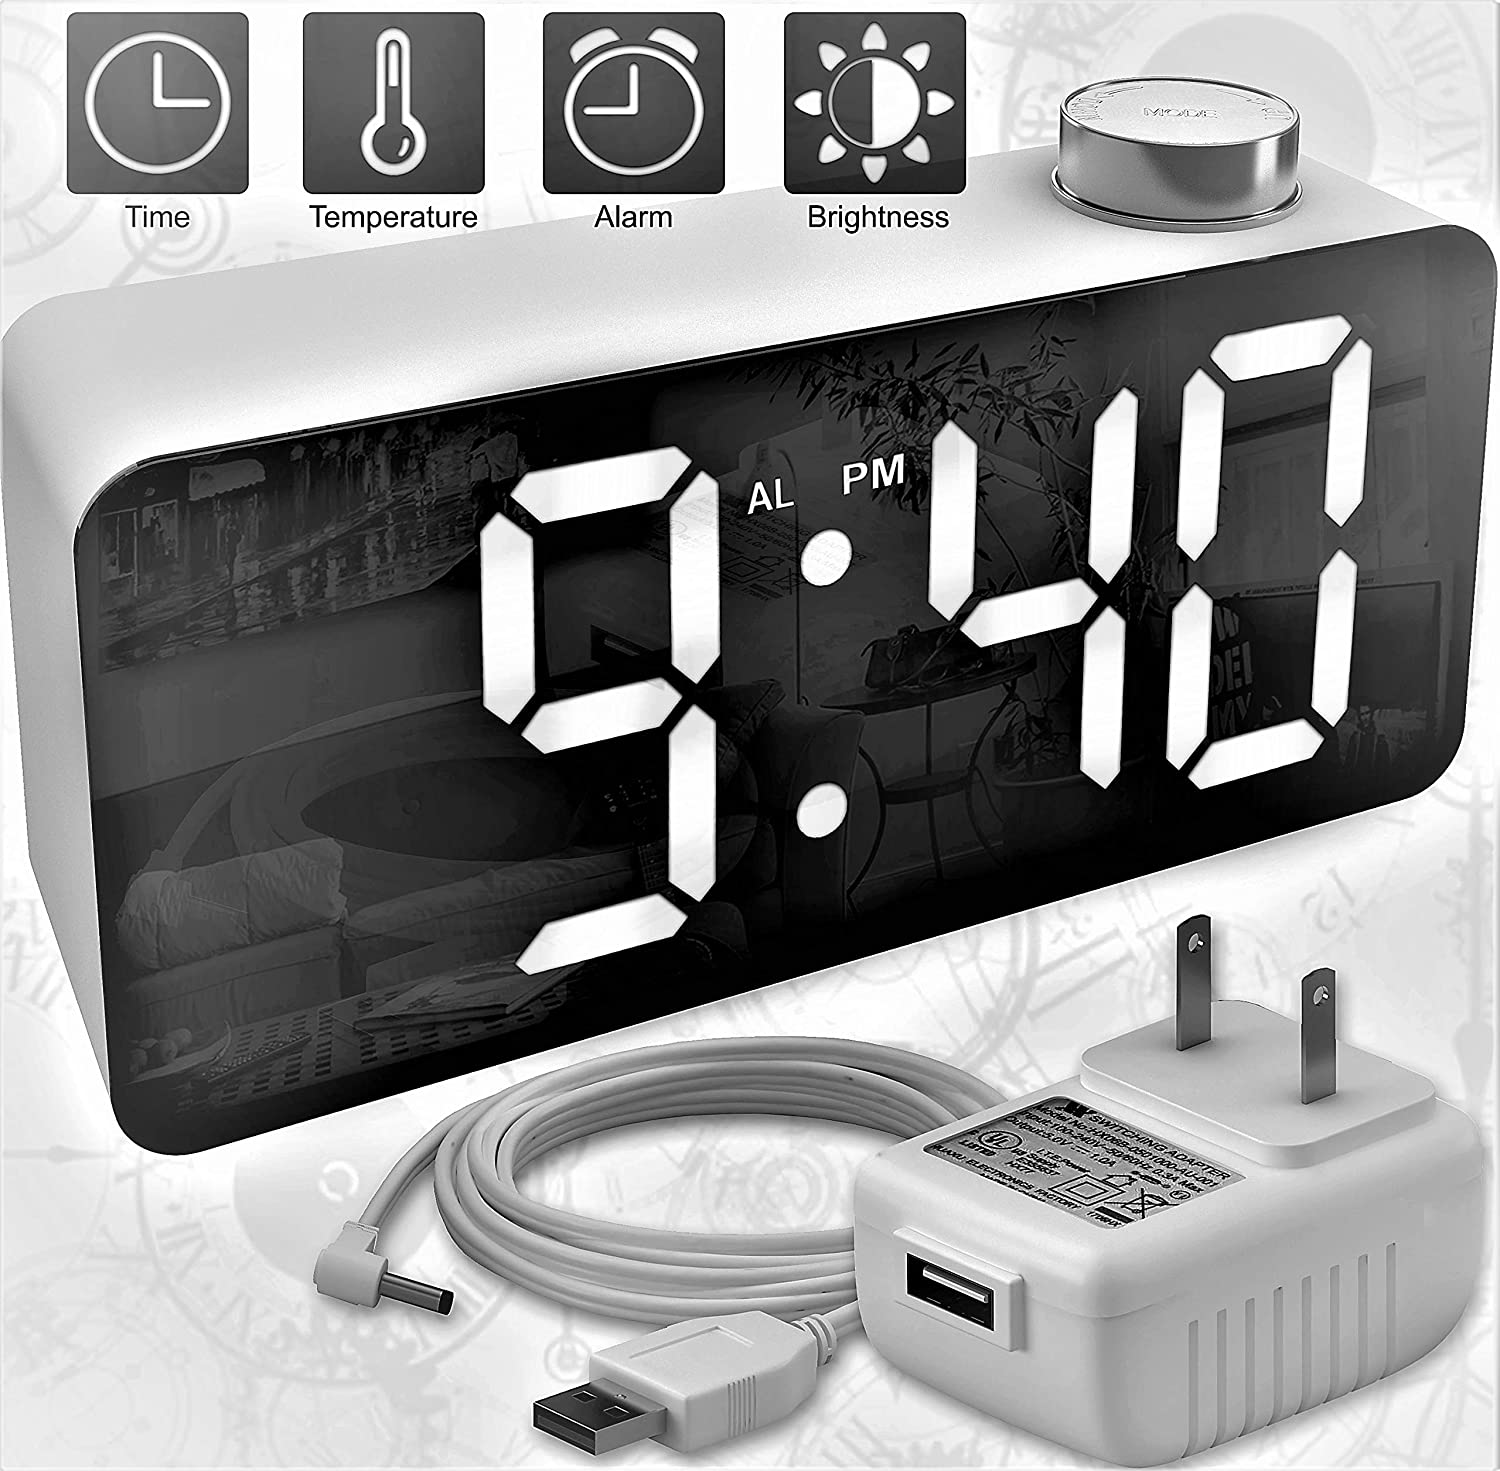 X Ykoki Alarm Clock – Digital Clock LED Display – Time Snooze Temperature Brightness Dimmer – Desk Clock for Kids Heavy Sleepers Adults – Modern Alarm Clocks for Bedrooms Bedside Home Battery Clock